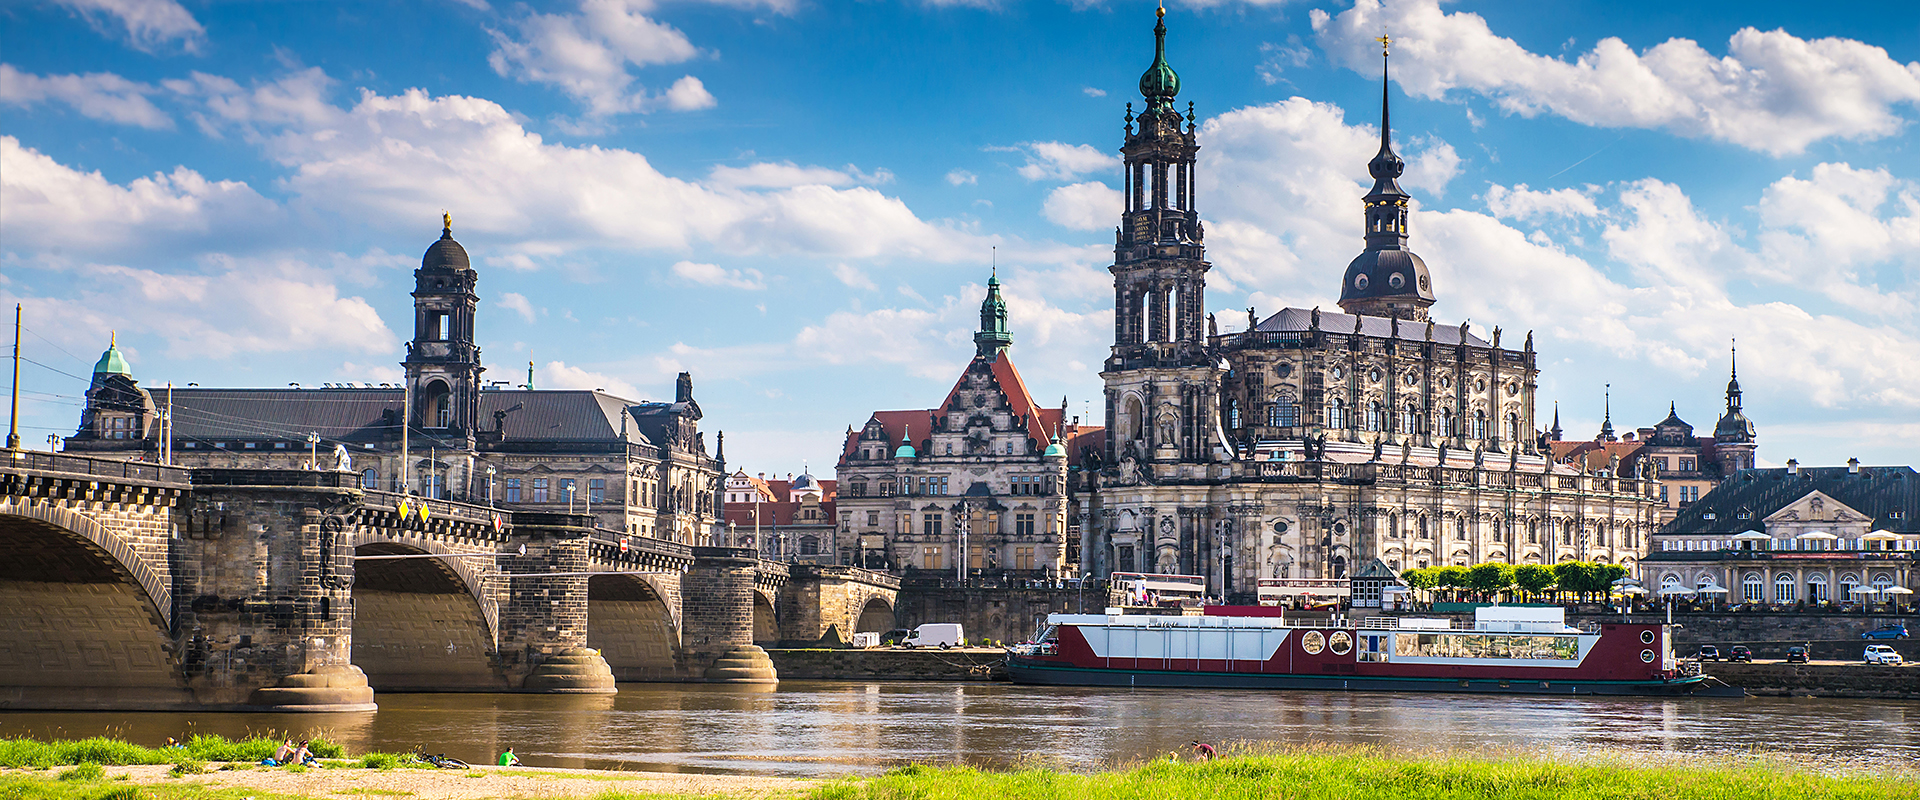 Where to Stay in Dresden? Best Areas Guide